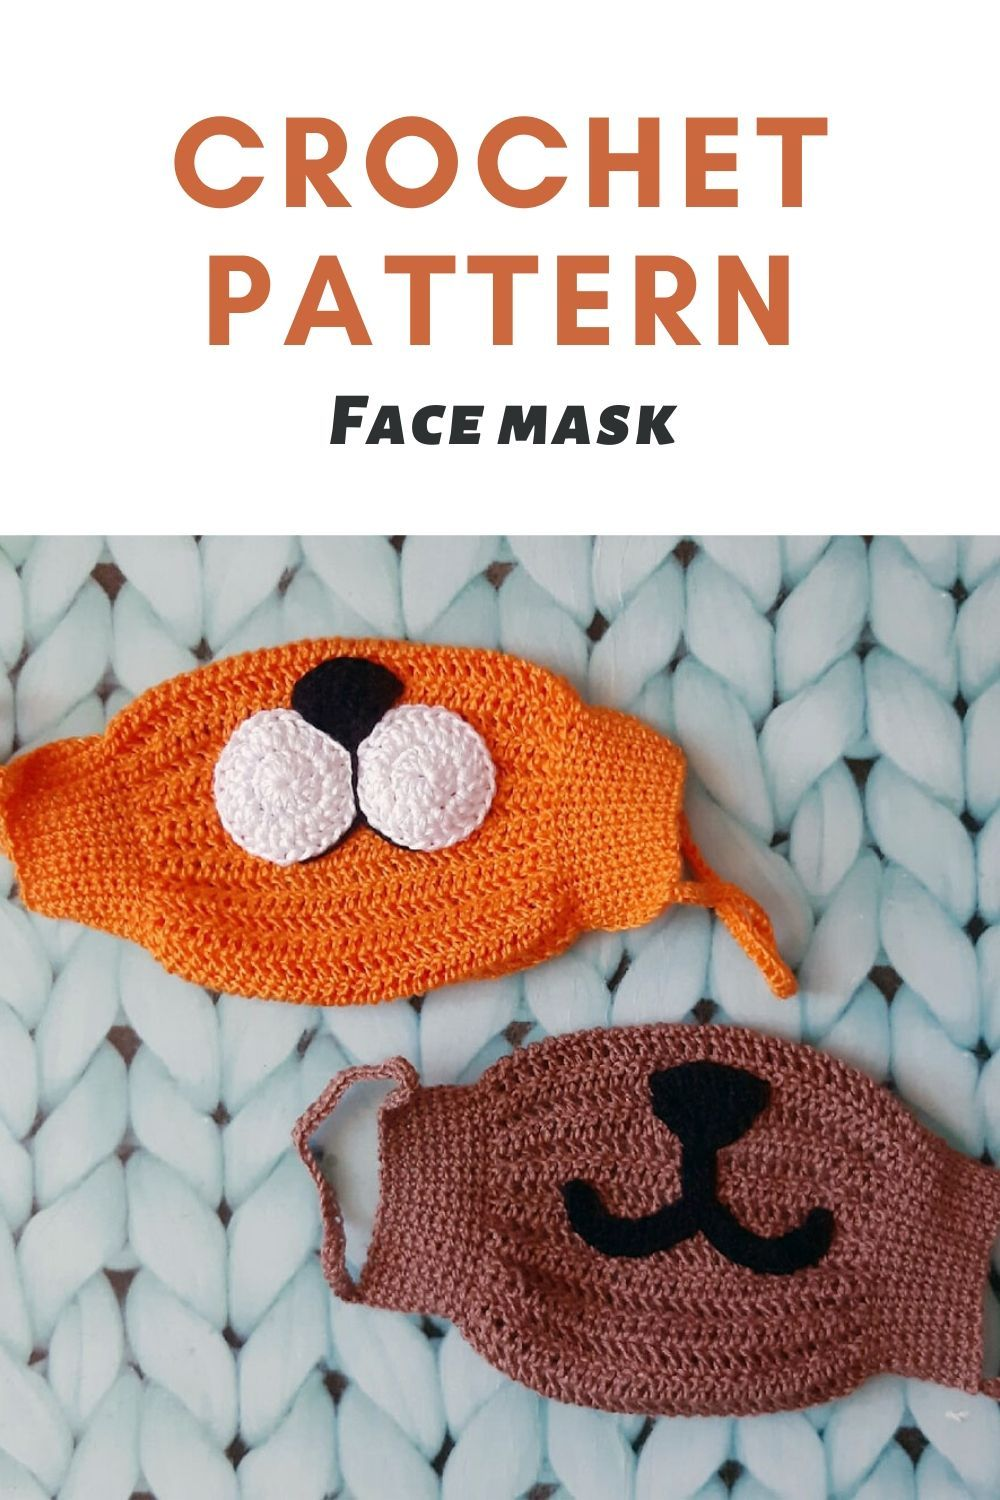 Crochet pattern face mask Allergy mask tutorial Cotton mask for adult pattern Crochet mask DIY mask